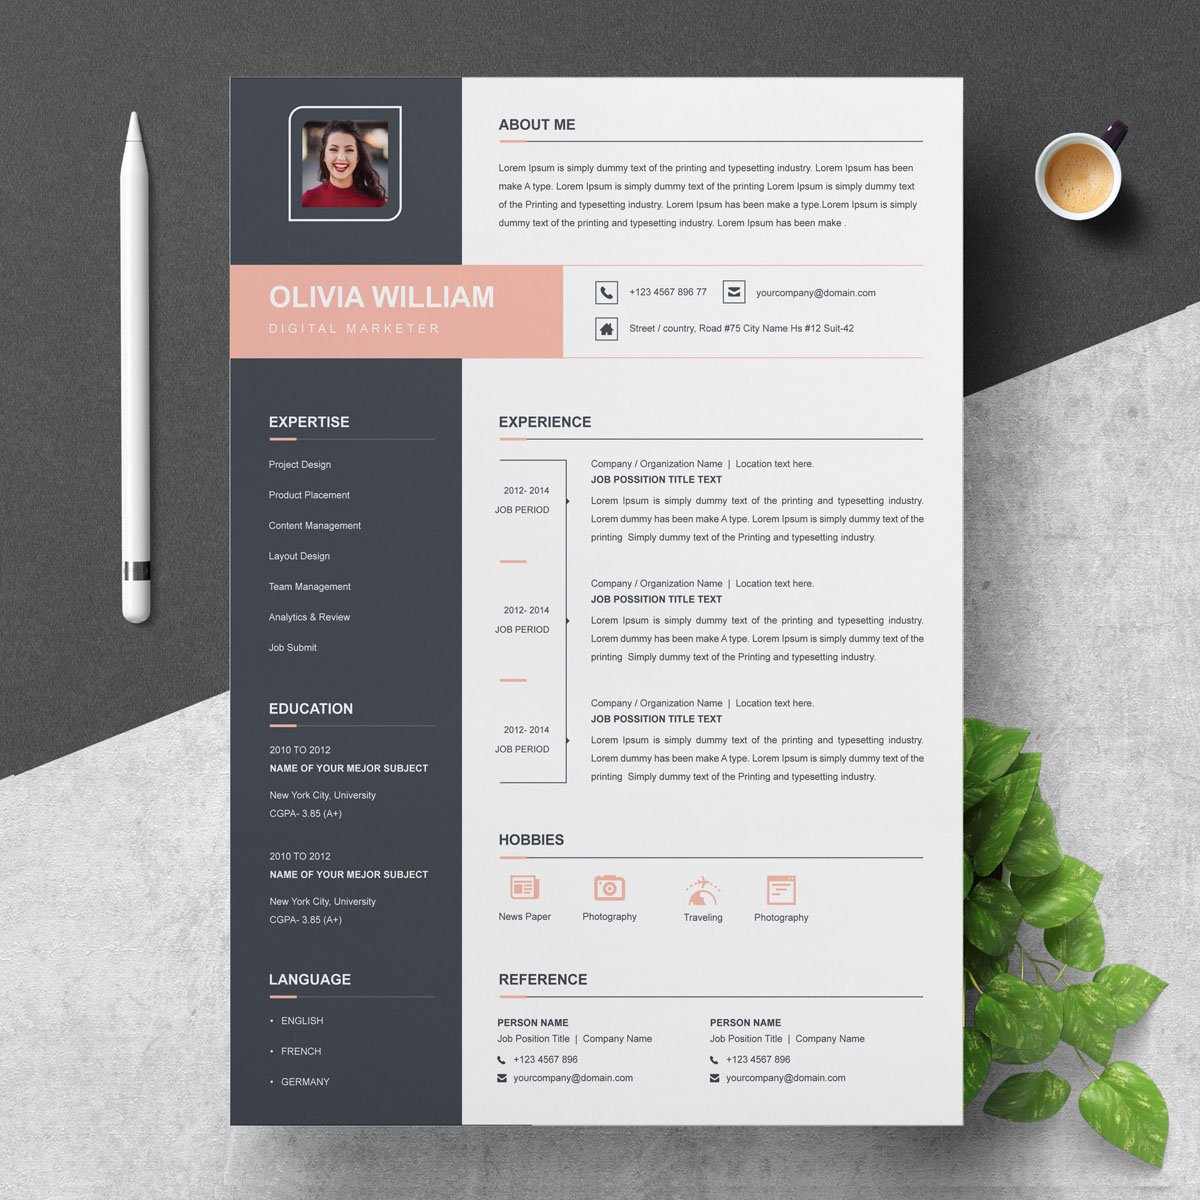 https://s3.tmimgcdn.com/templates/25423/scr/1564412082094_01_Clean%20Professional%20Creative%20and%20Modern%20Resume%20CV%20Curriculum%20Vitae%20Design%20Template%20MS%20Word%20Apple%20Pages%20PSD%20Free%20Download.jpg